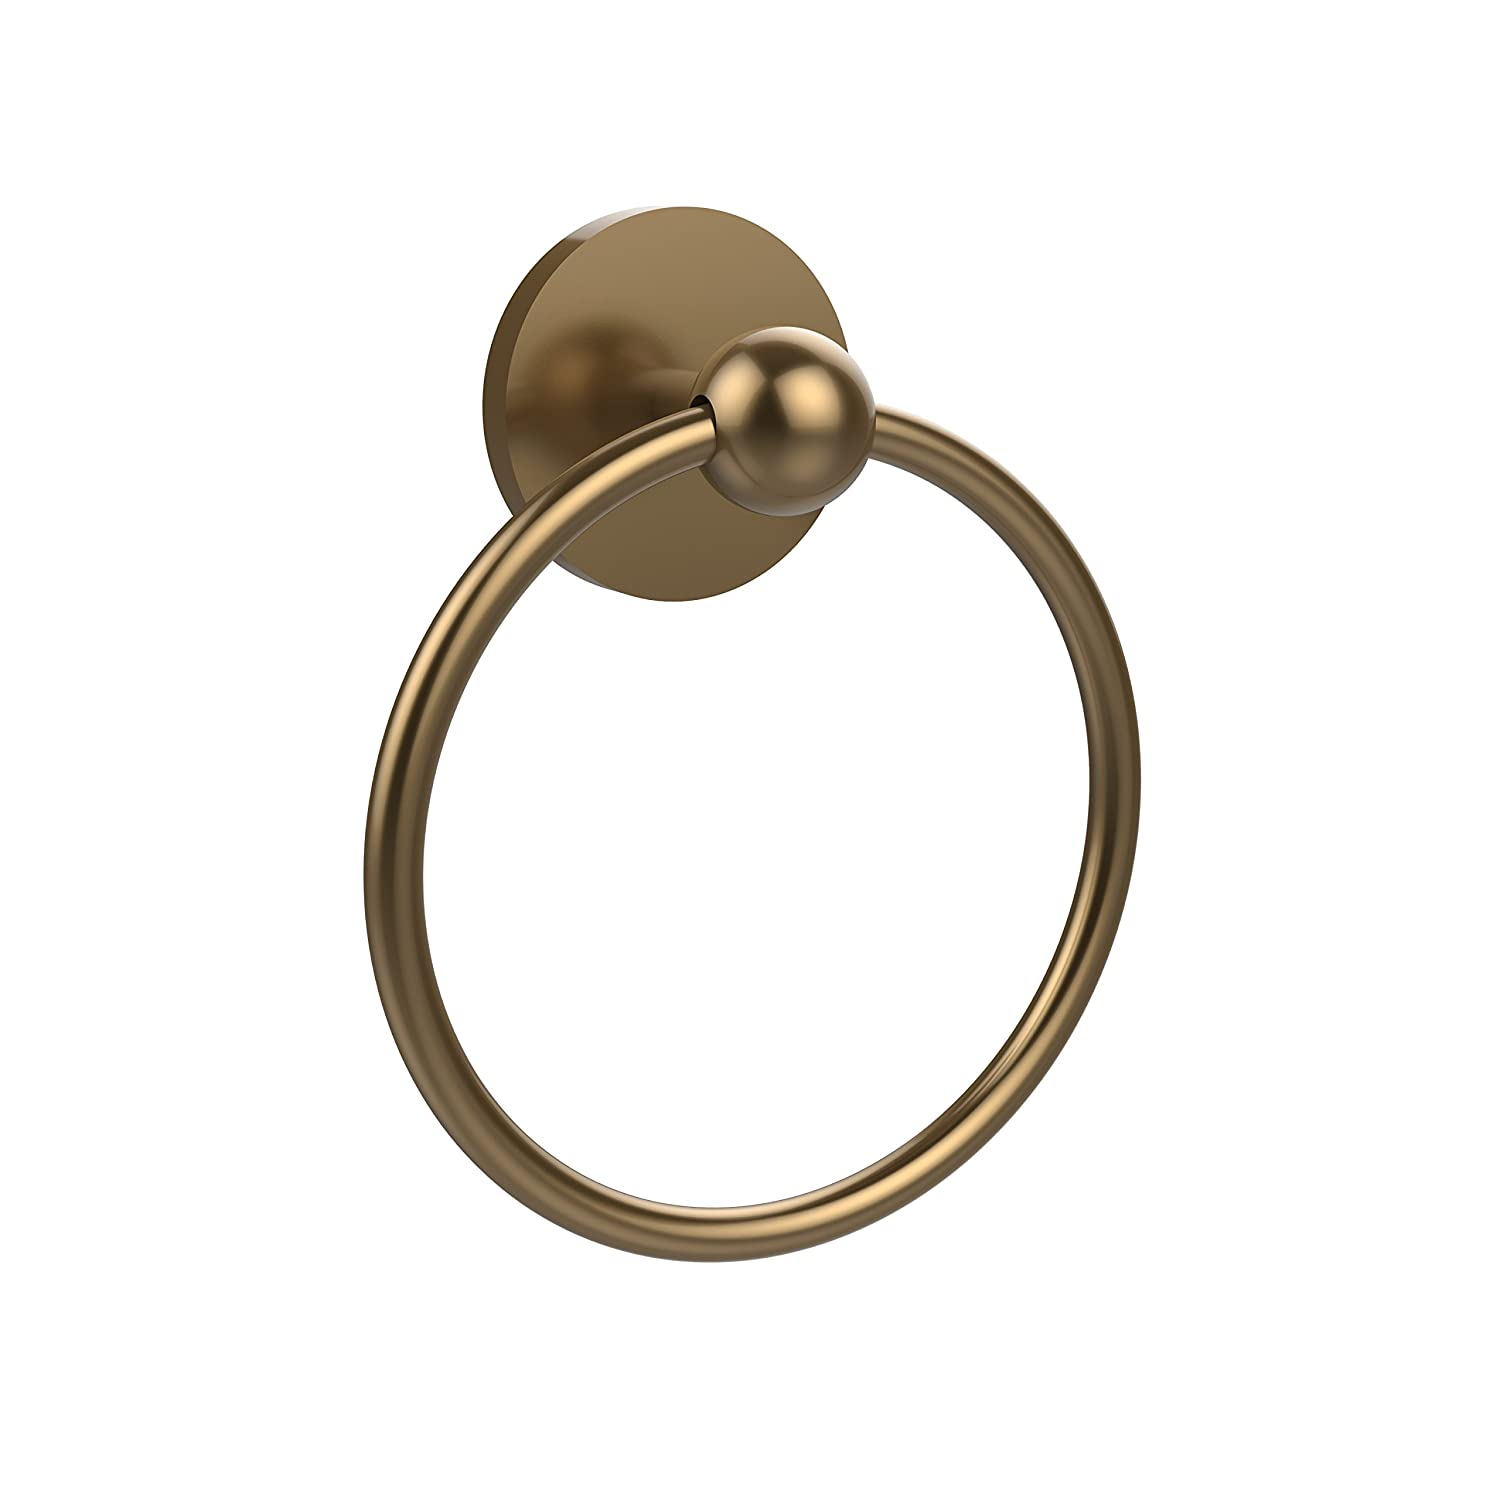 Allied Brass P1016-BBR 6-Inch Towel Ring, Brushed Bronze by Allied Brass B008NYT4OS つや消しブロンズ つや消しブロンズ